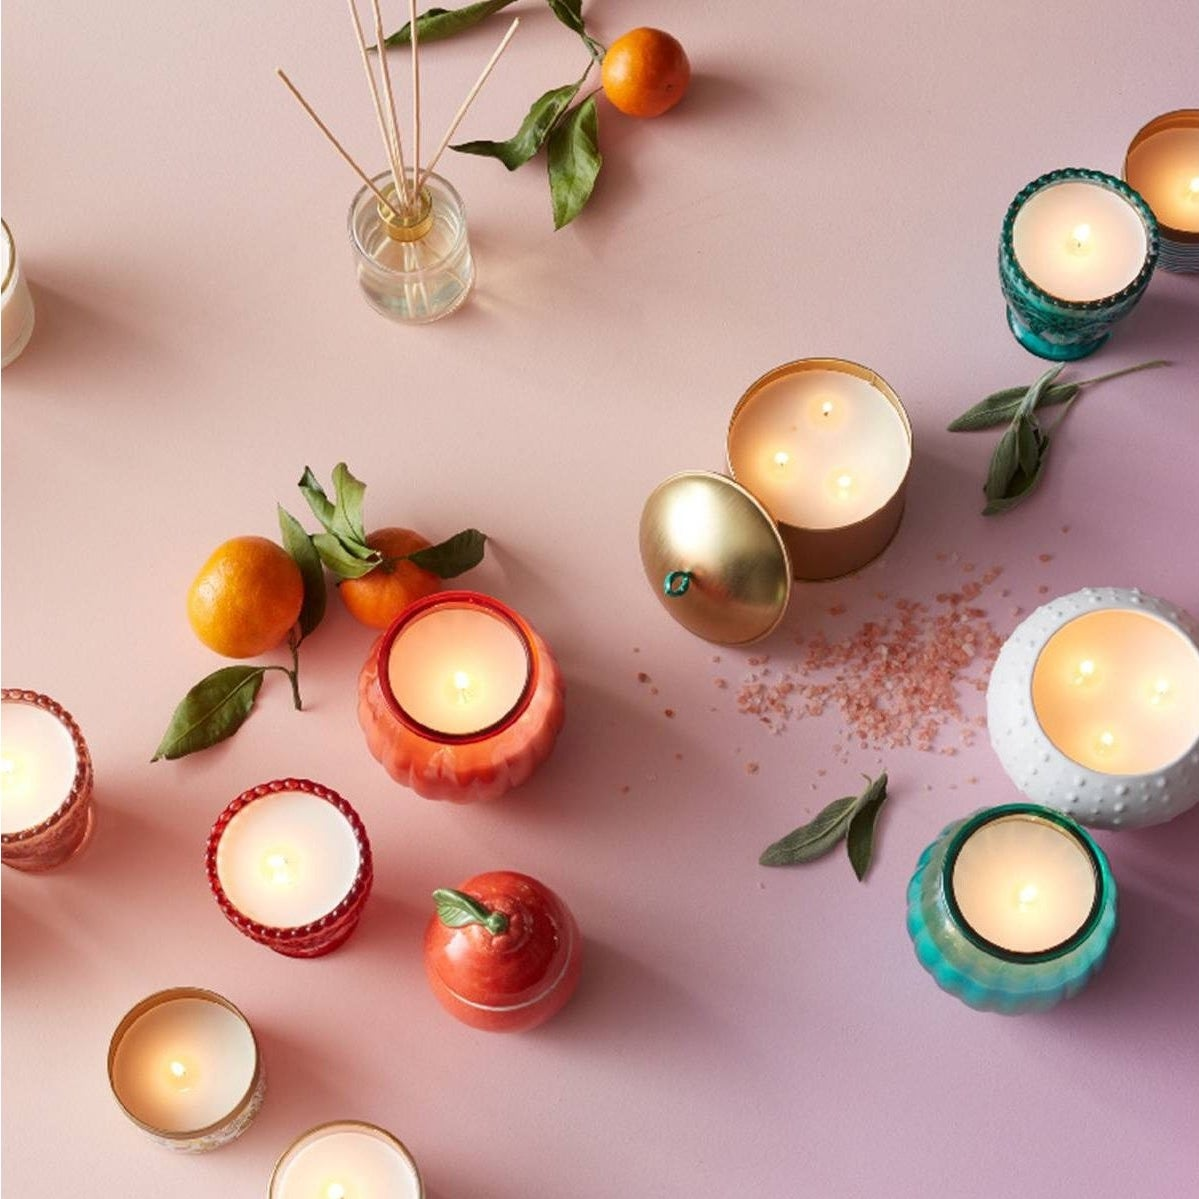 Opalhouse lidded candles with fruit and other jars on a light pink background